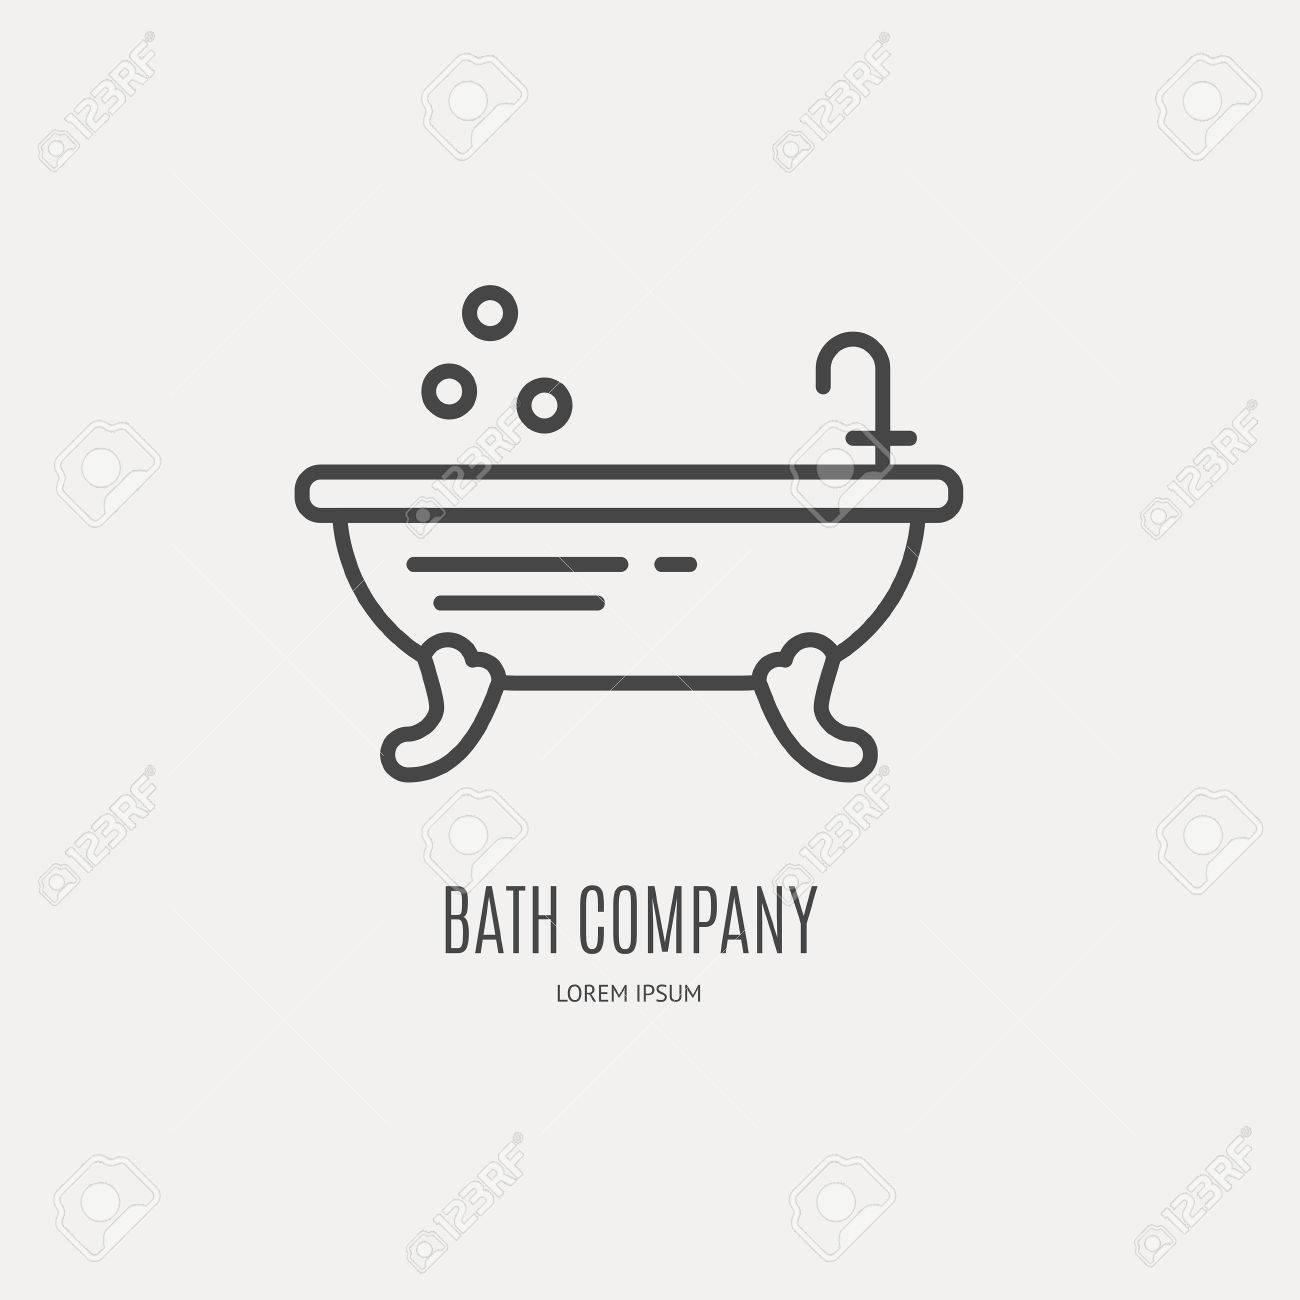 Modern Line Style Logo With Freestanding Bathtube - Vector Design ...